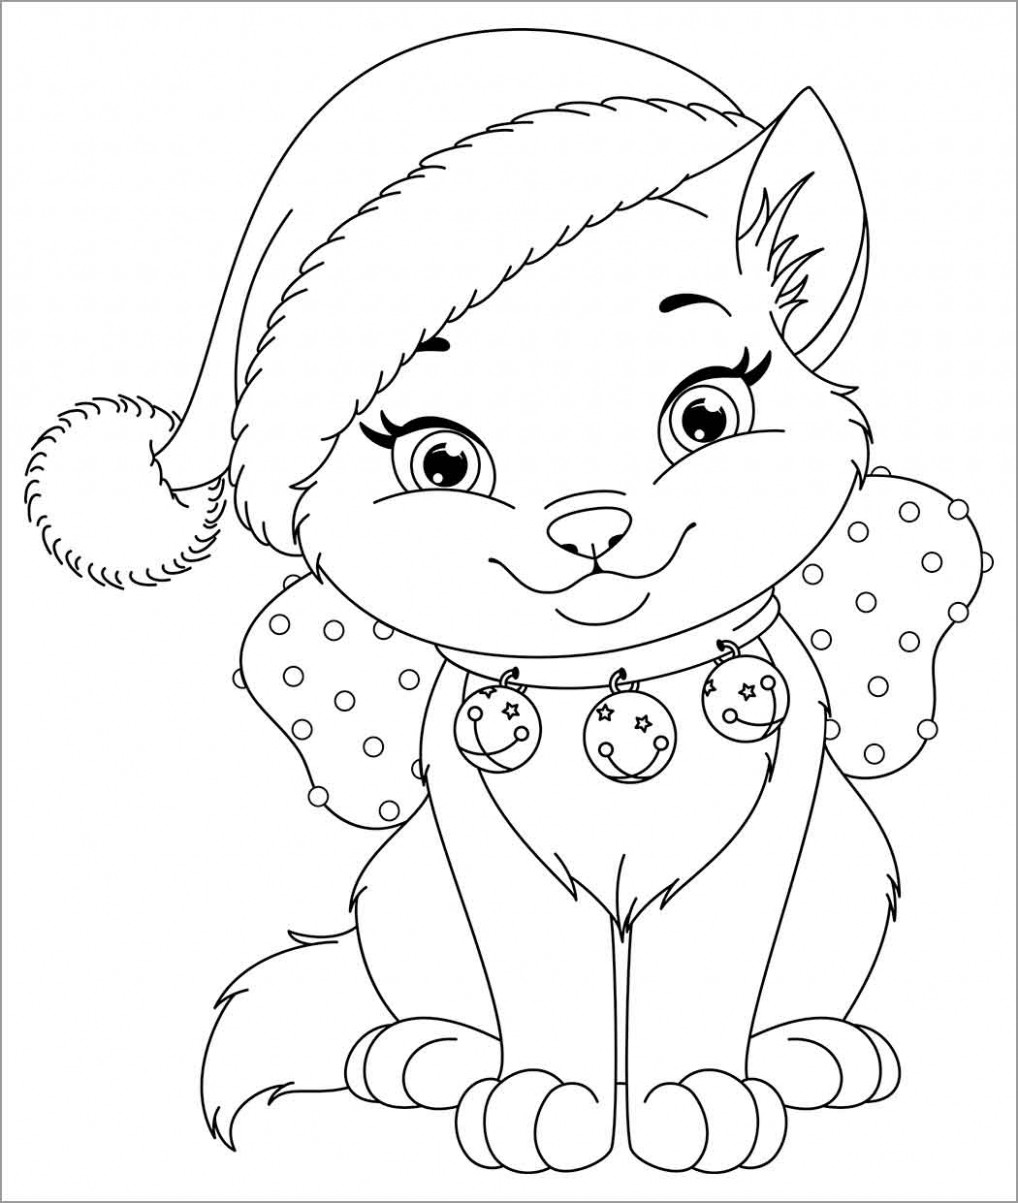 Christmas Cat Coloring Page – ColoringBay – Christmas Cat Coloring Pages